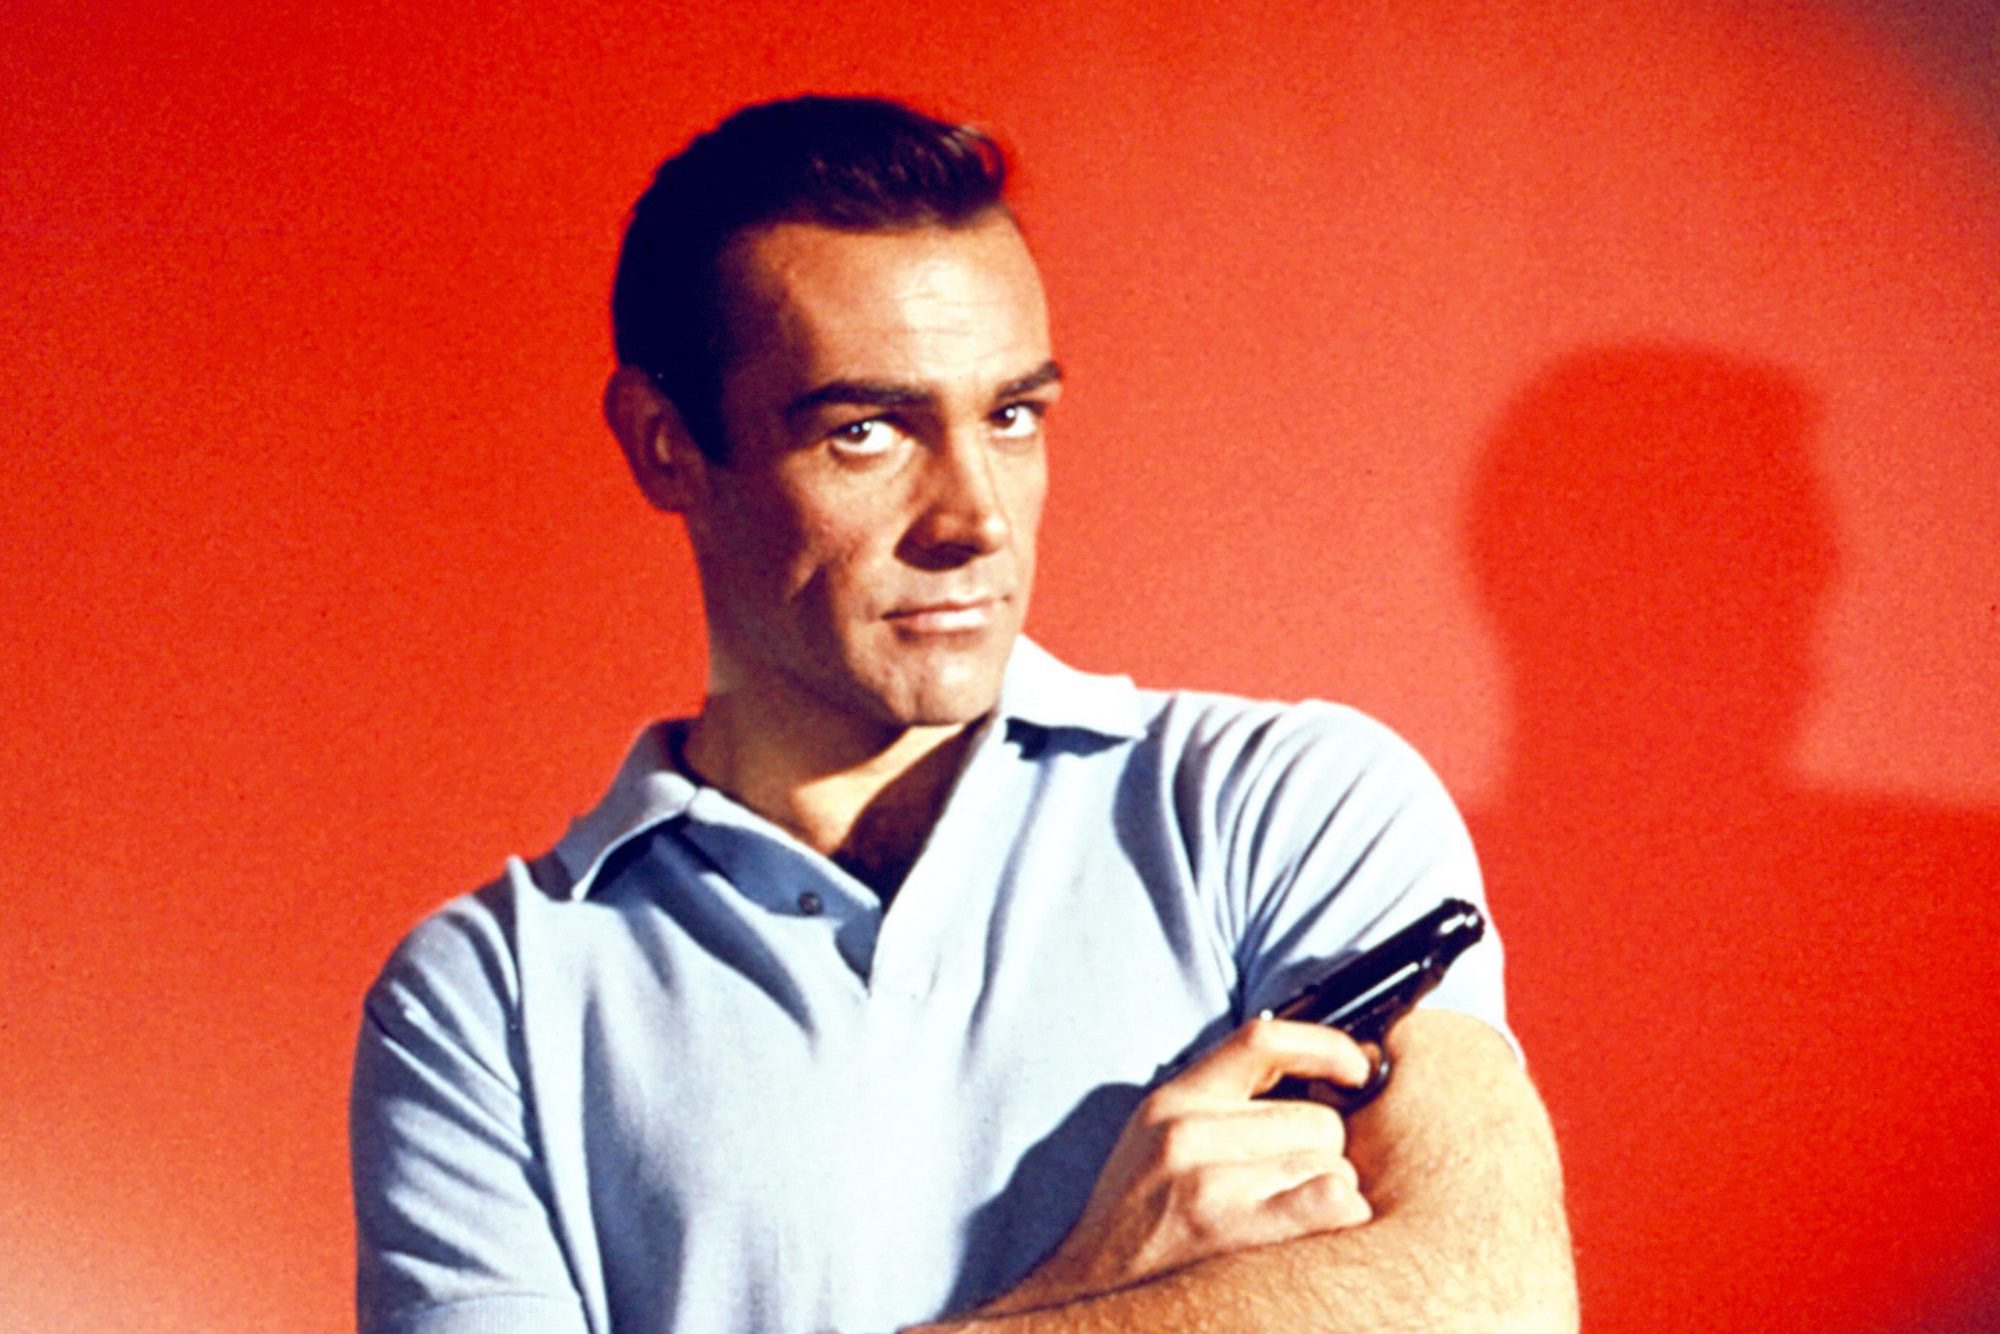 Sean Connery Voted Best James Bond, Ahead Of Roger Moore And Daniel Craig